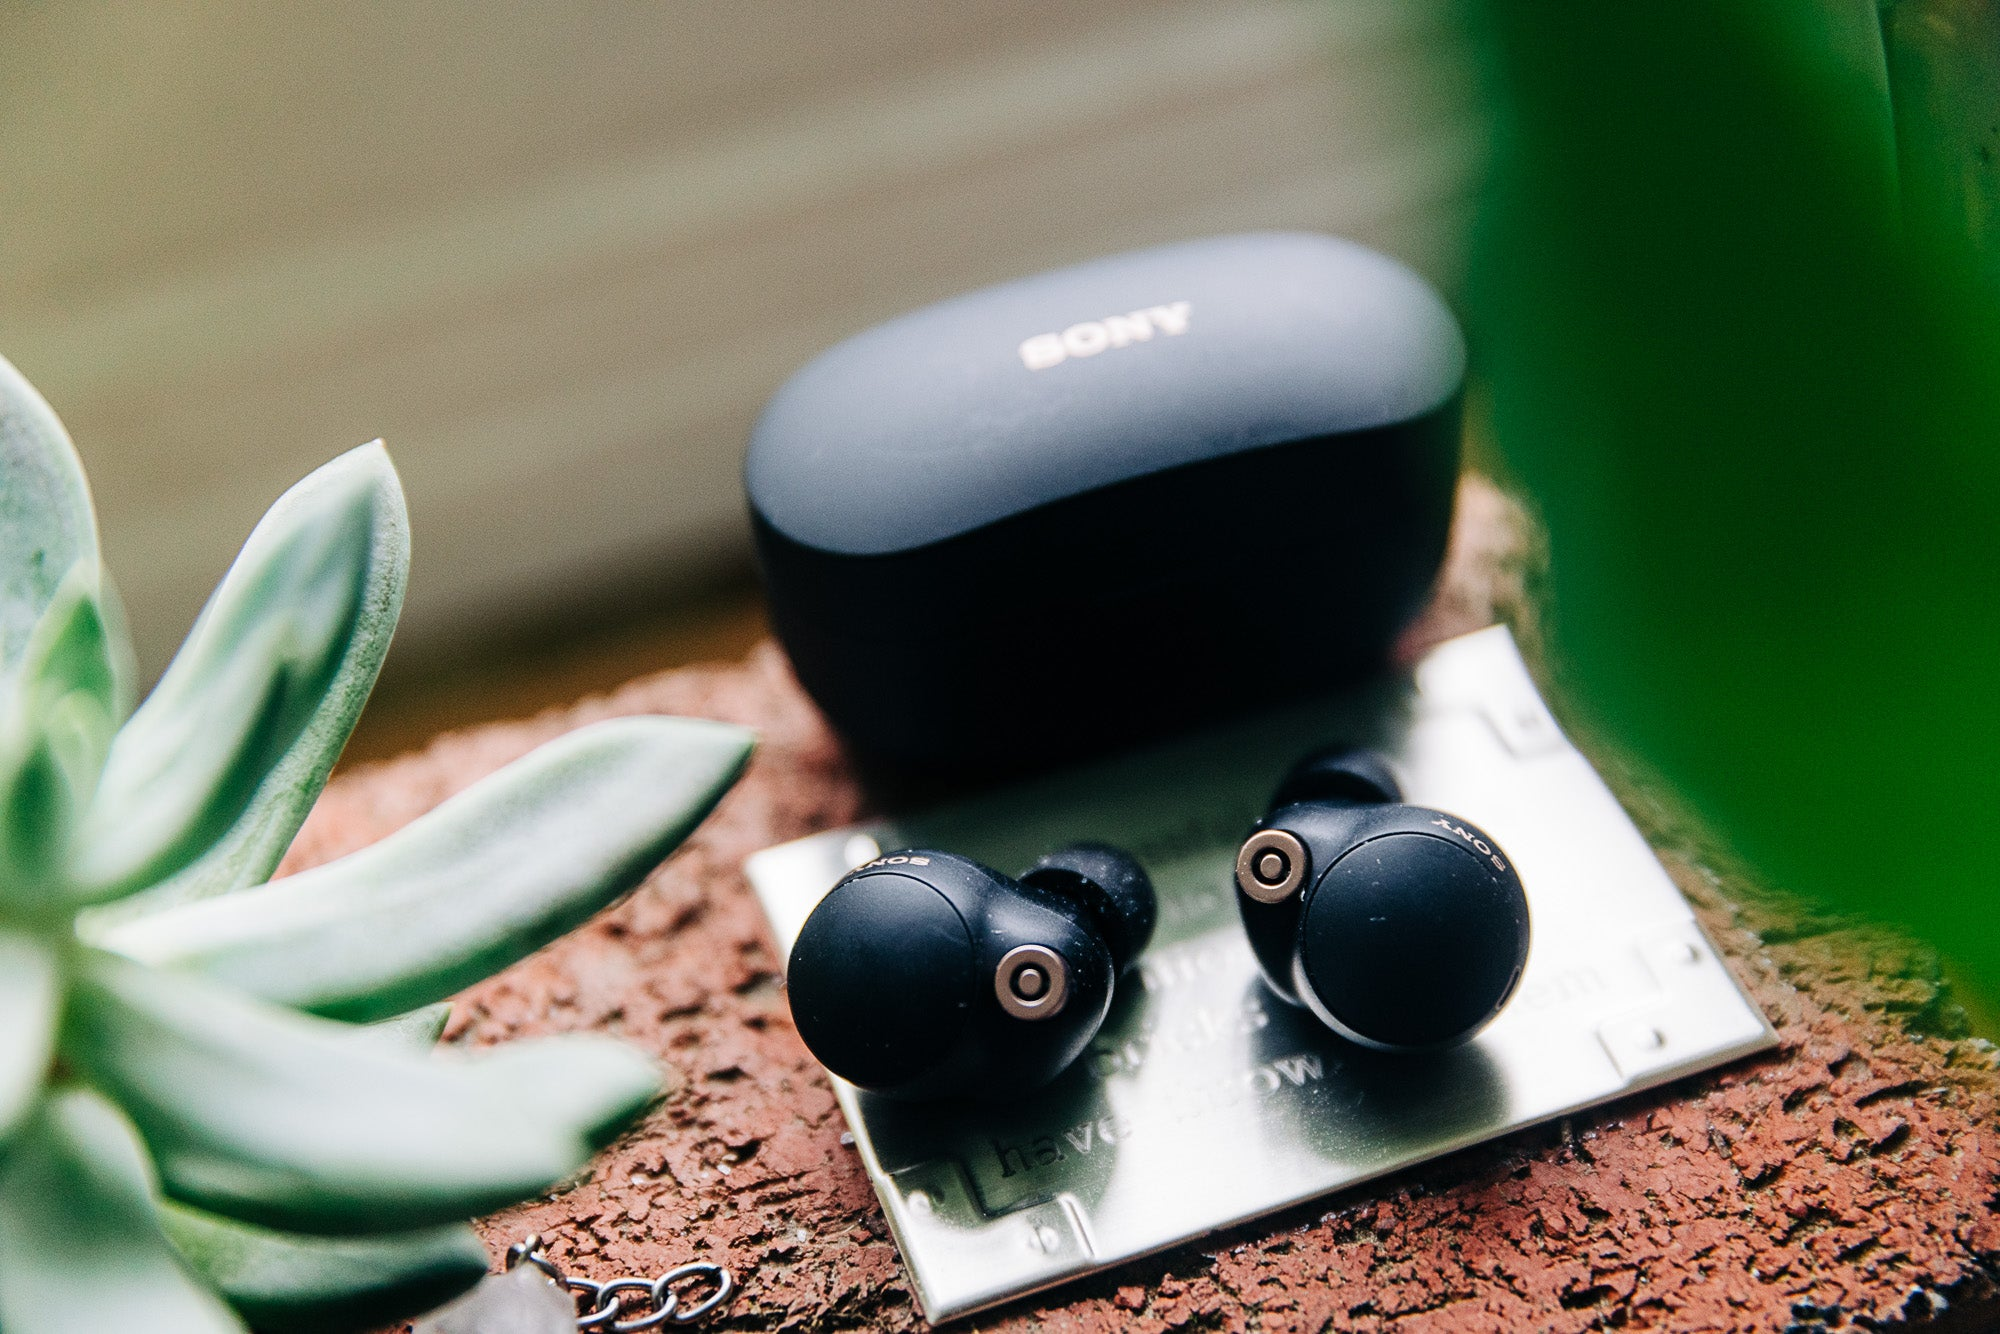 Sony wf-1000xm4 noise canceling earbuds with the case